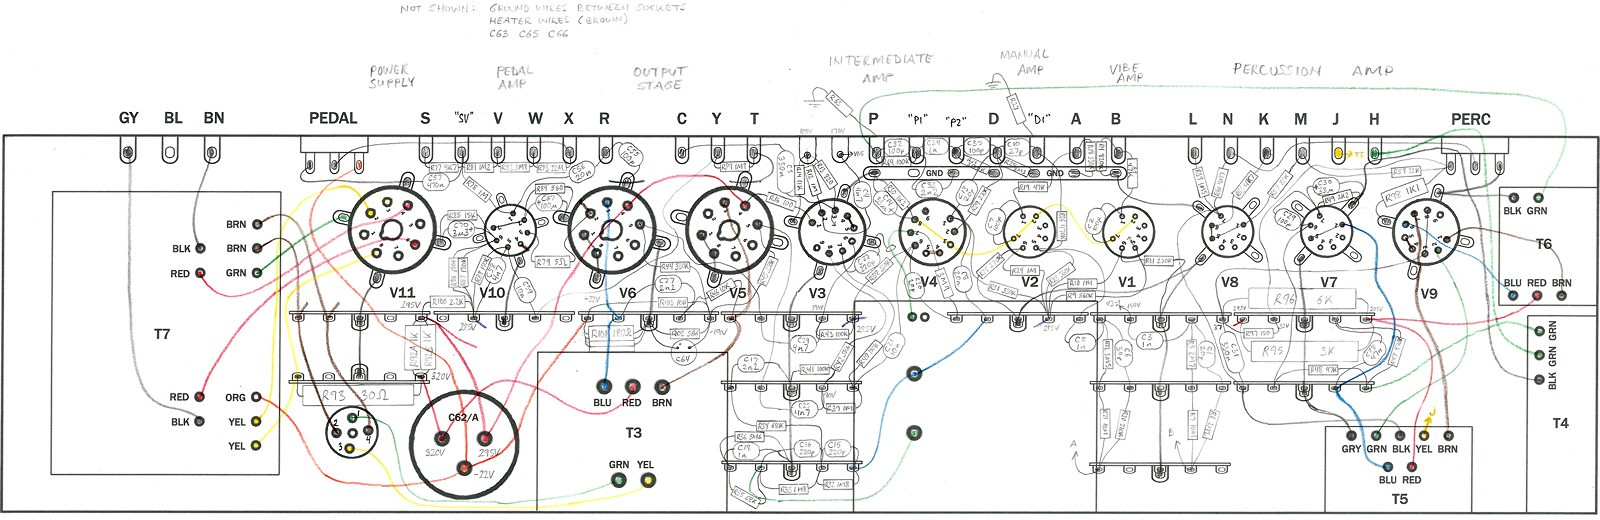 rebuilding a hammond ao 29 amplifier from the ground up the completed wiring diagram drawn full size